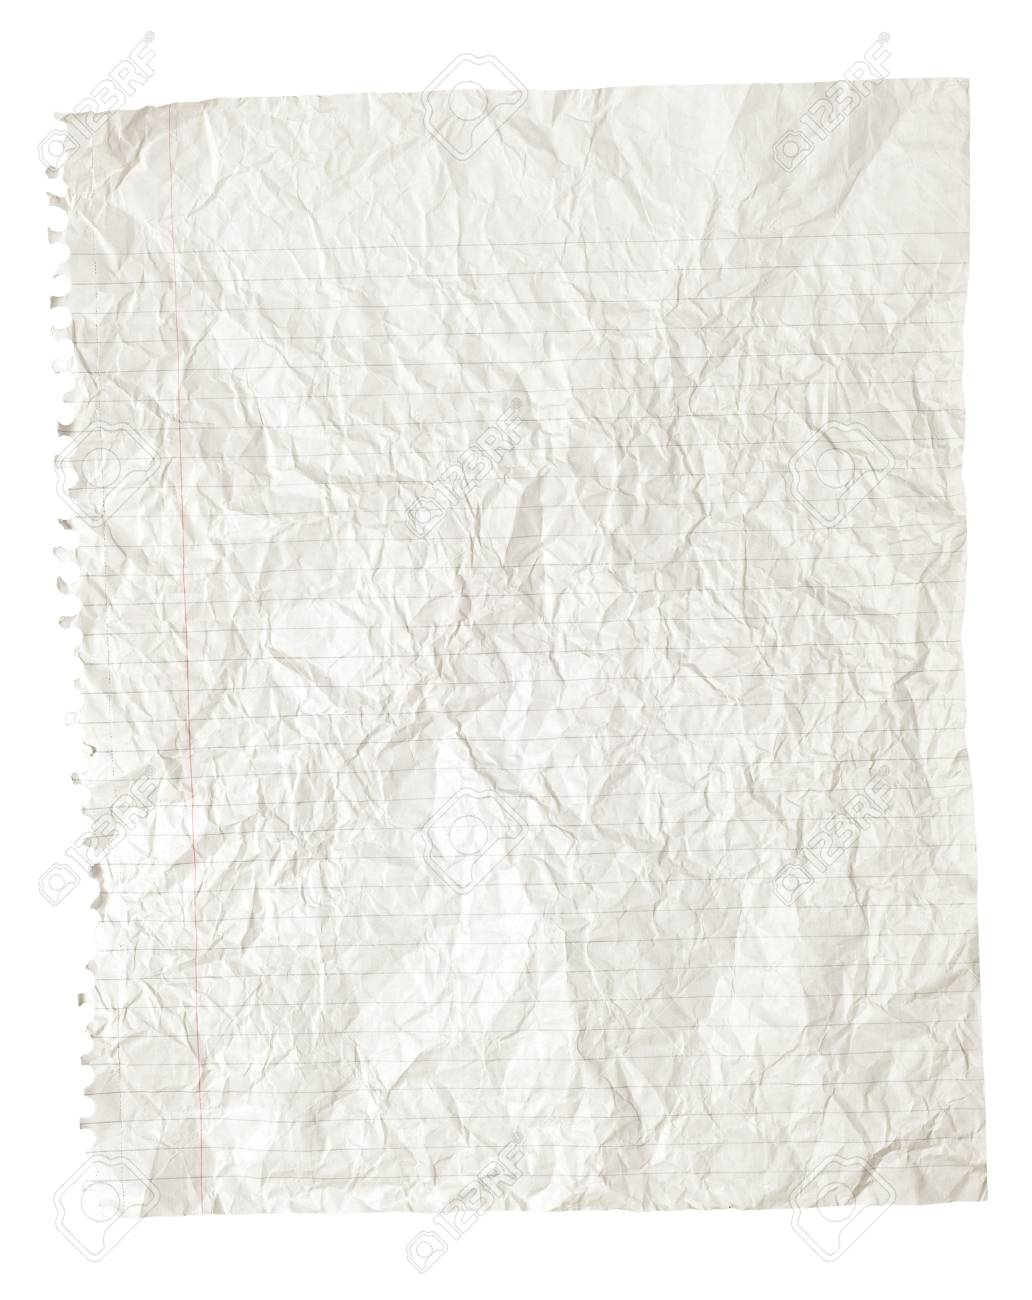 white crinkled or crumpled ruled paper background stock photo